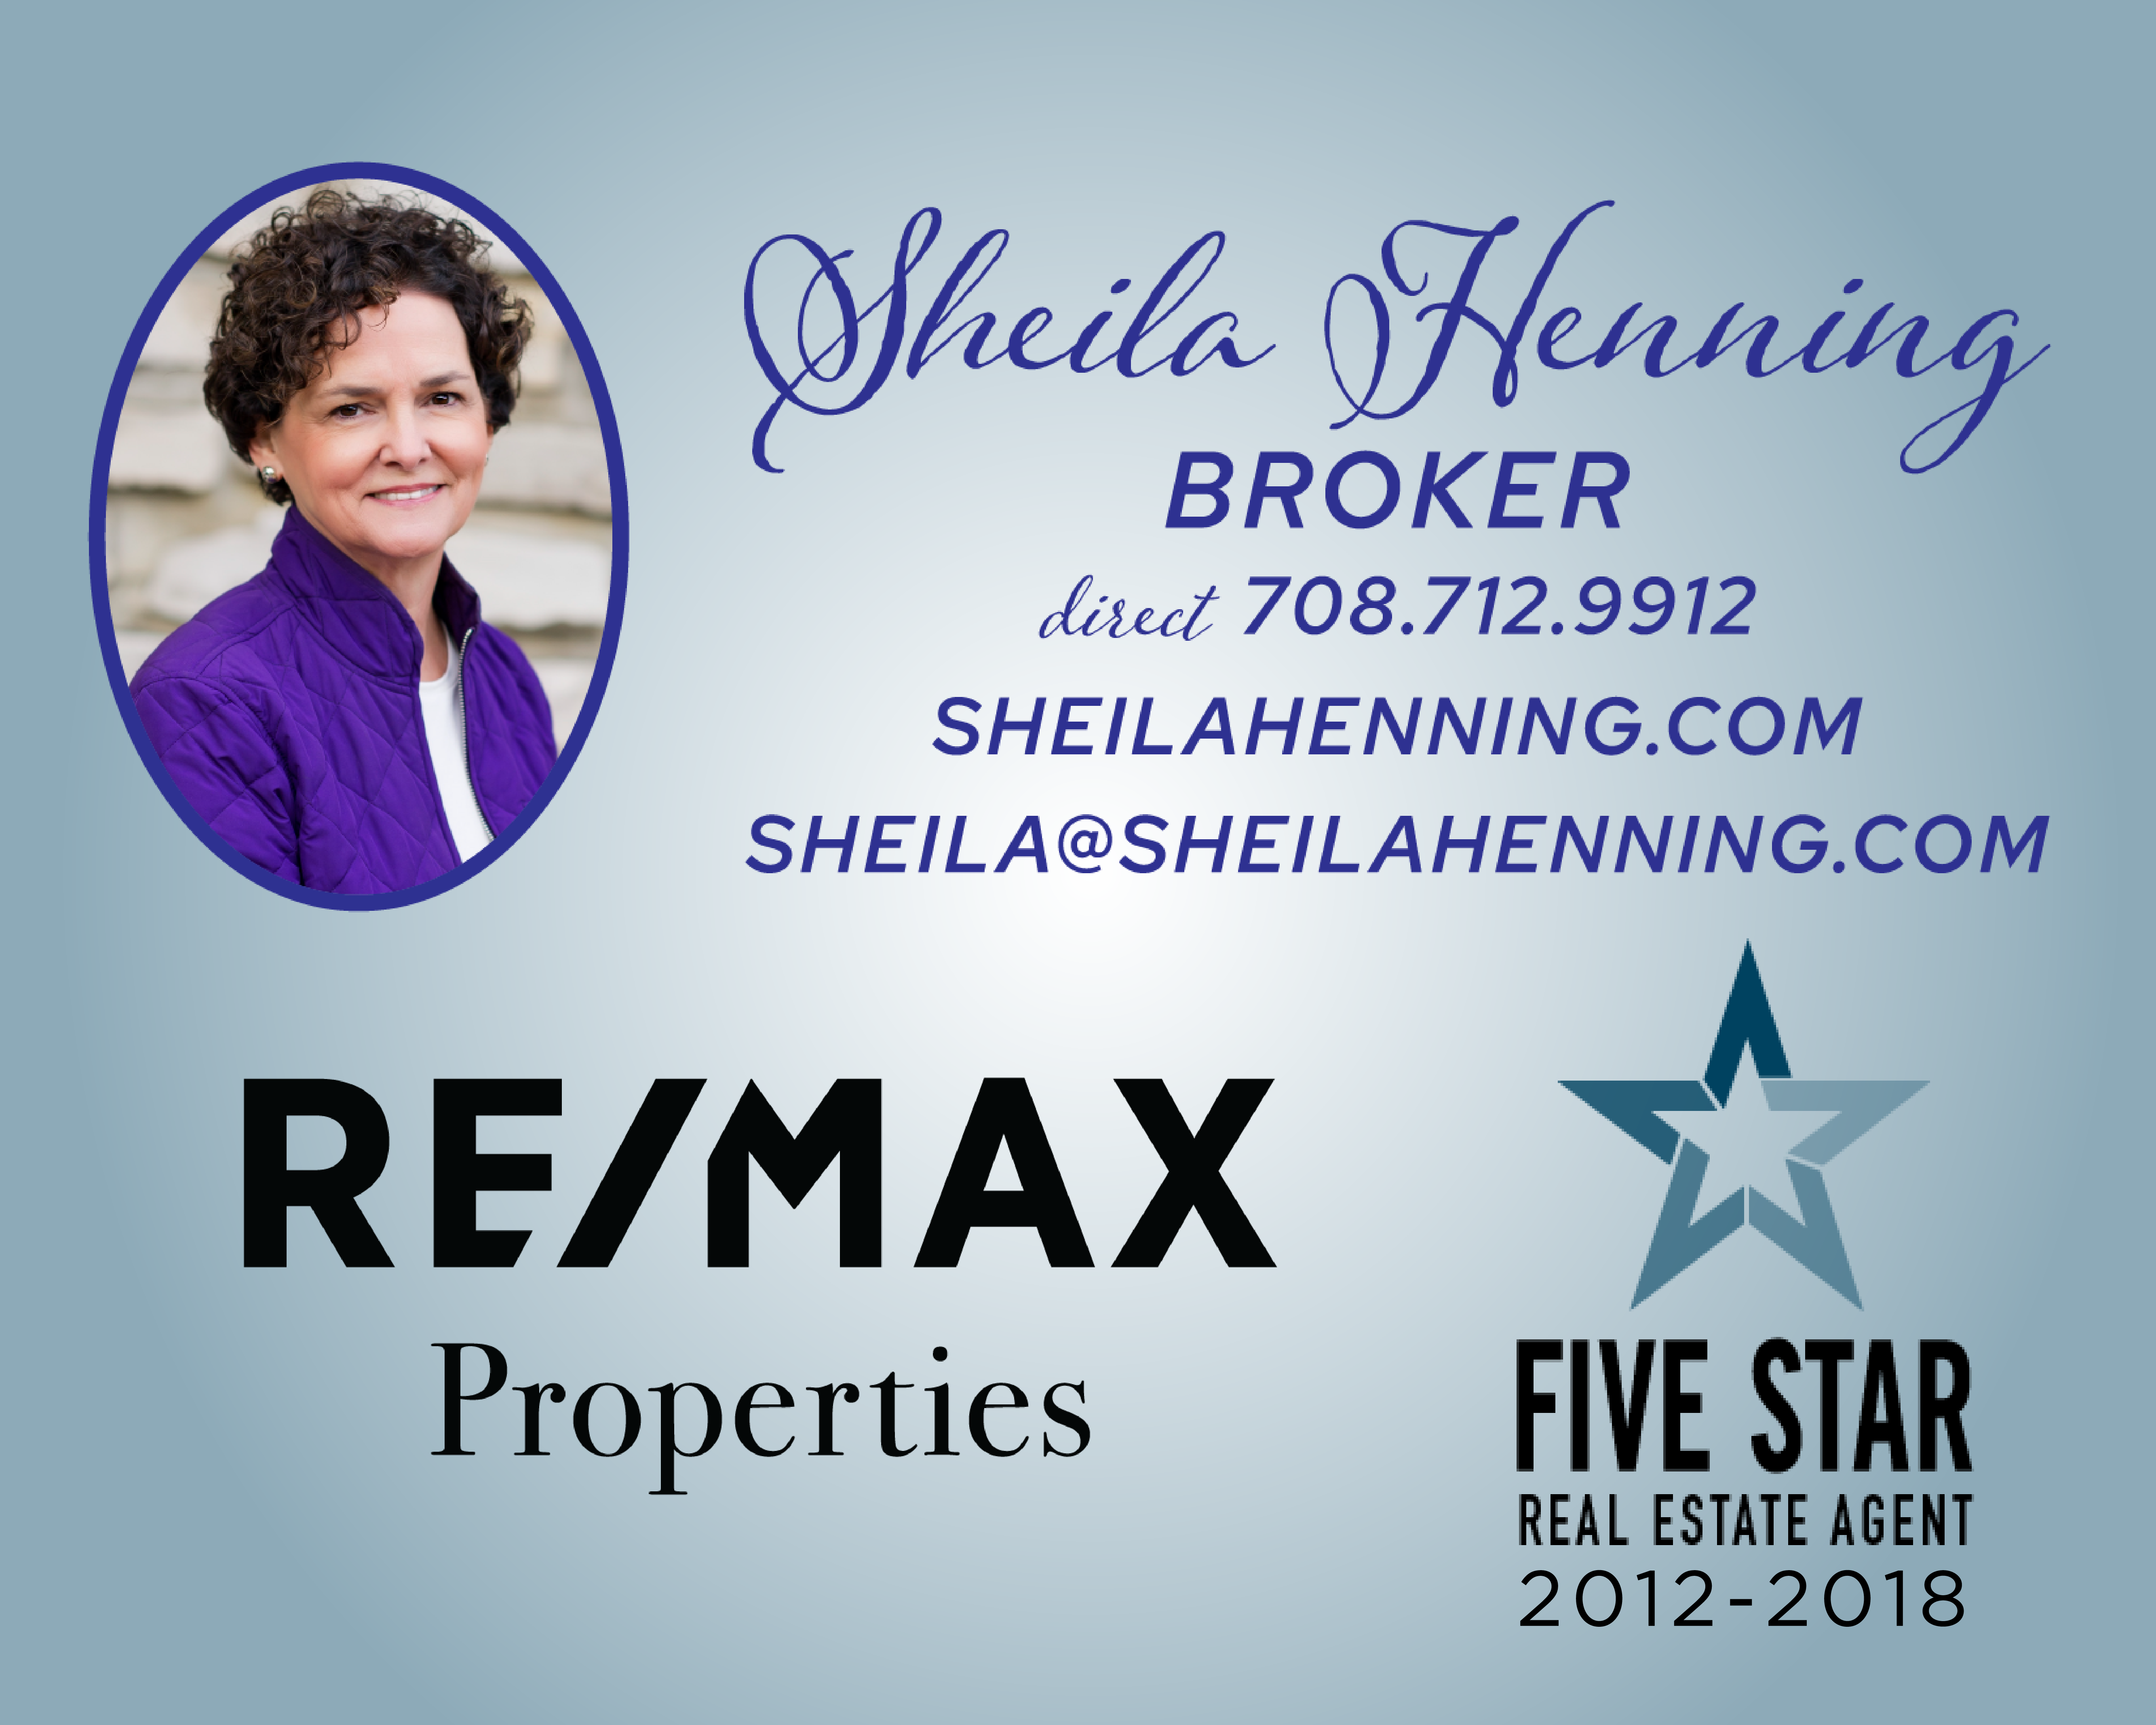 Re/Max, REMAX, Re/Max Properties, Sheila Henning, real estate